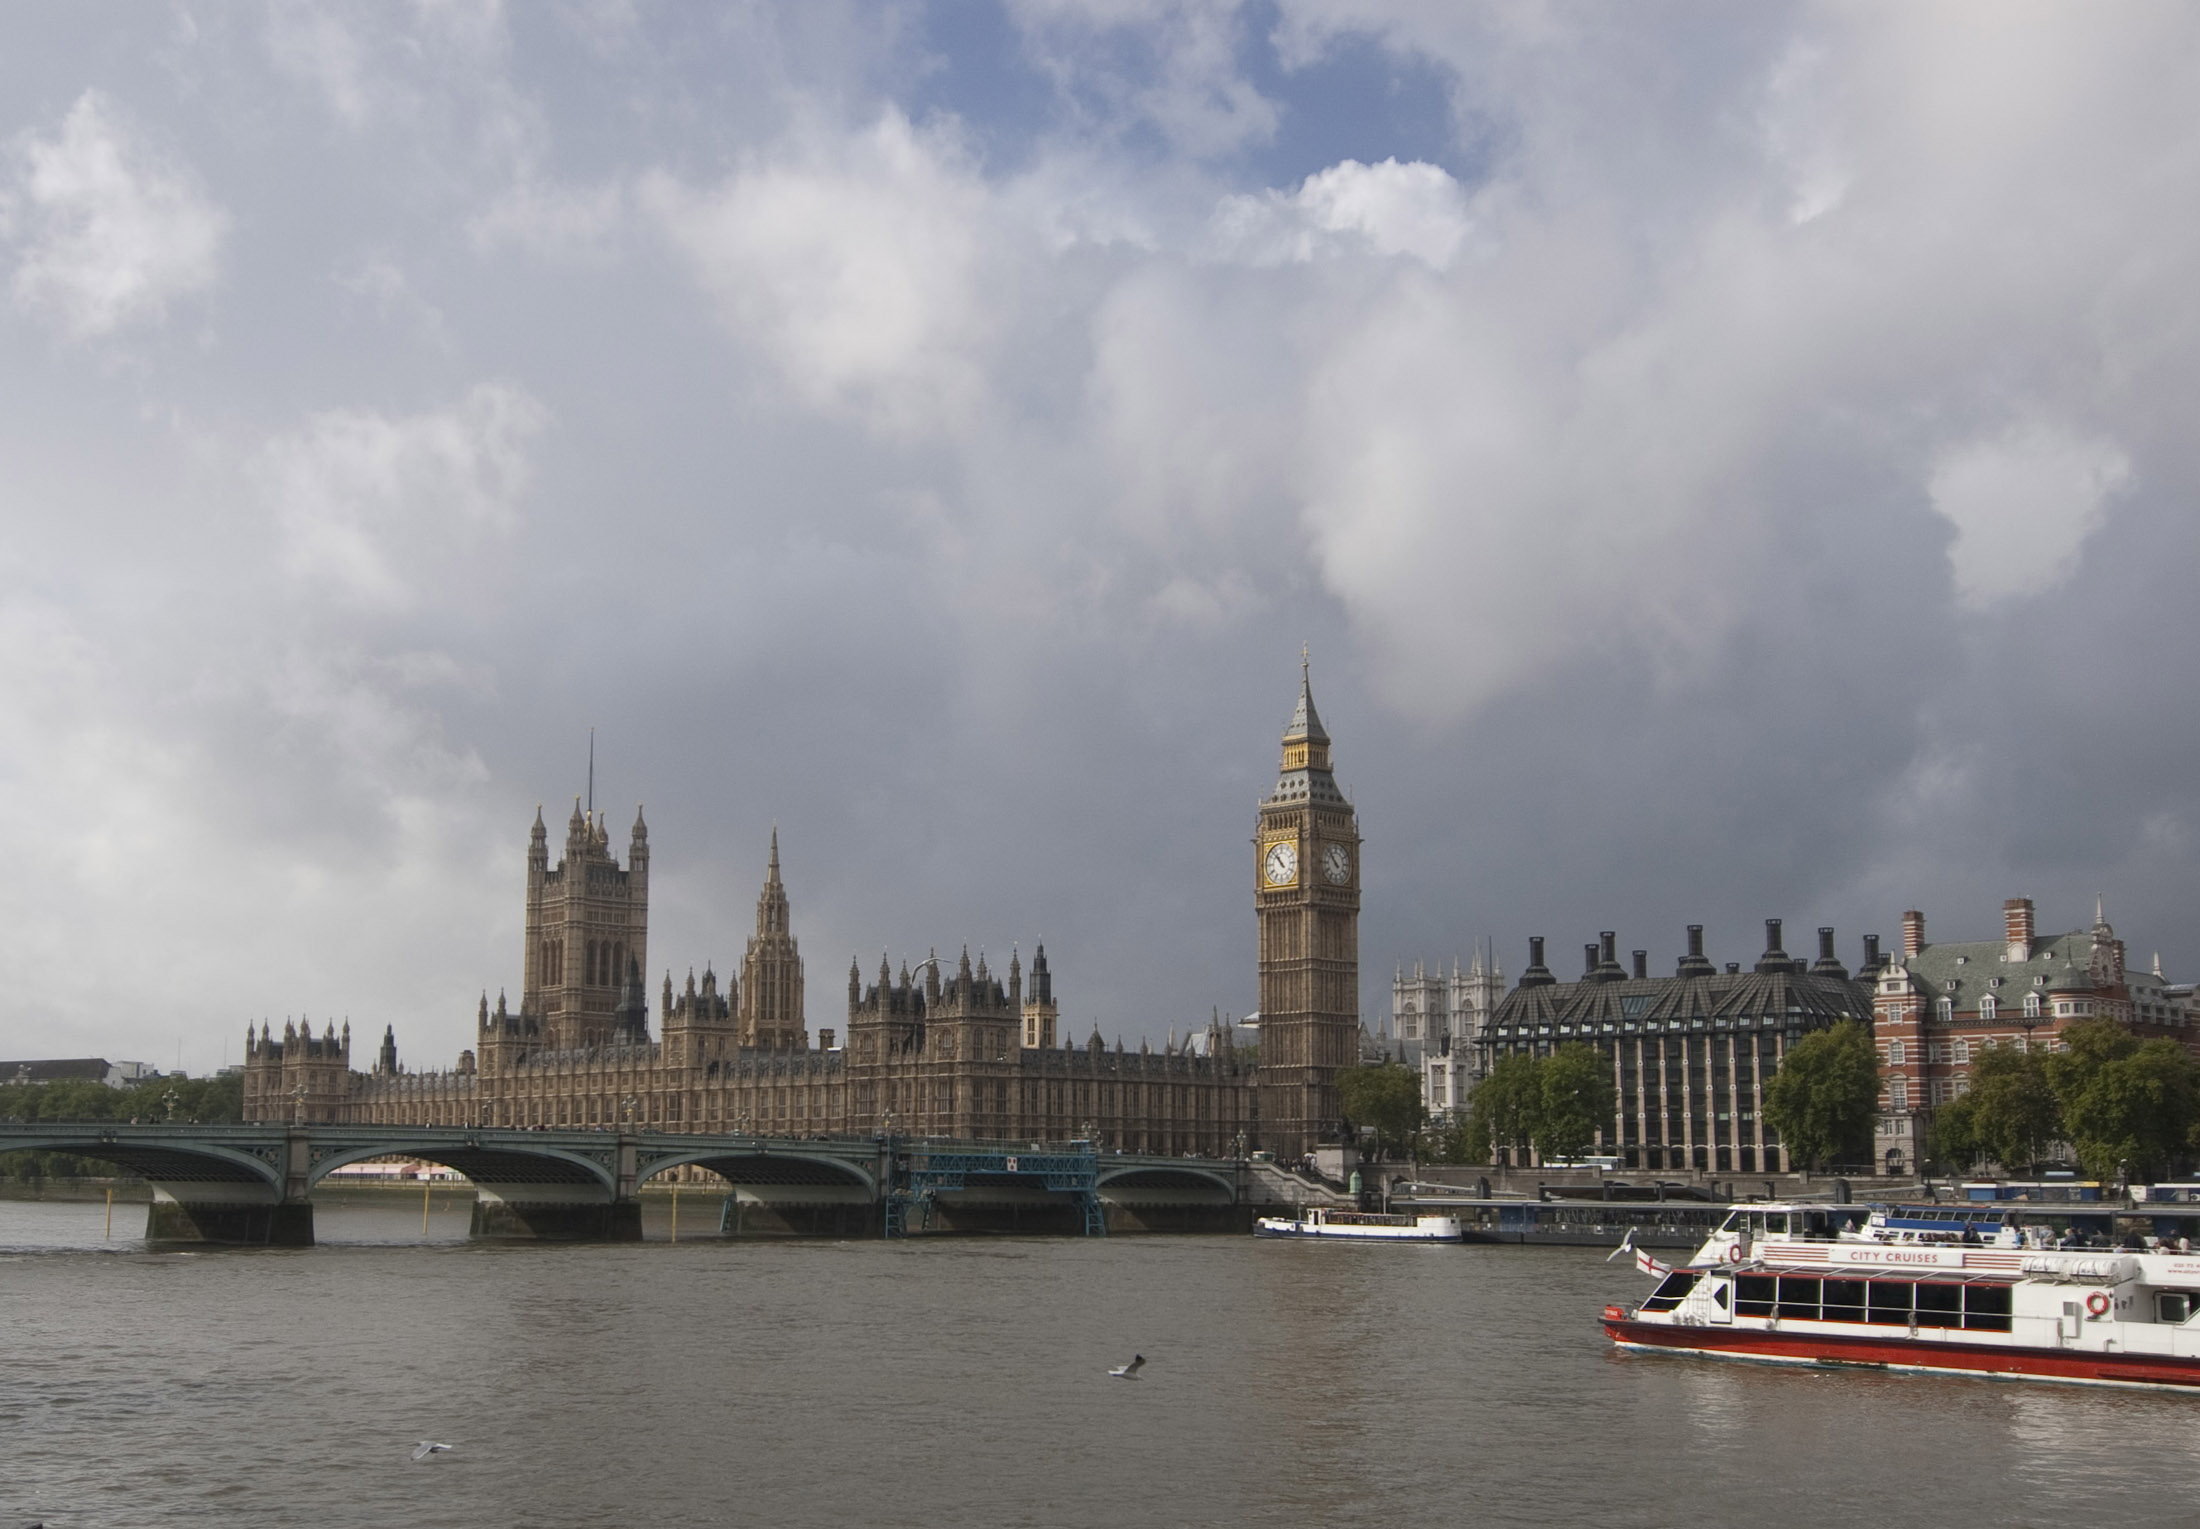 a view of the palace of westminster and big ben clock tower from across the river and westminster bridge